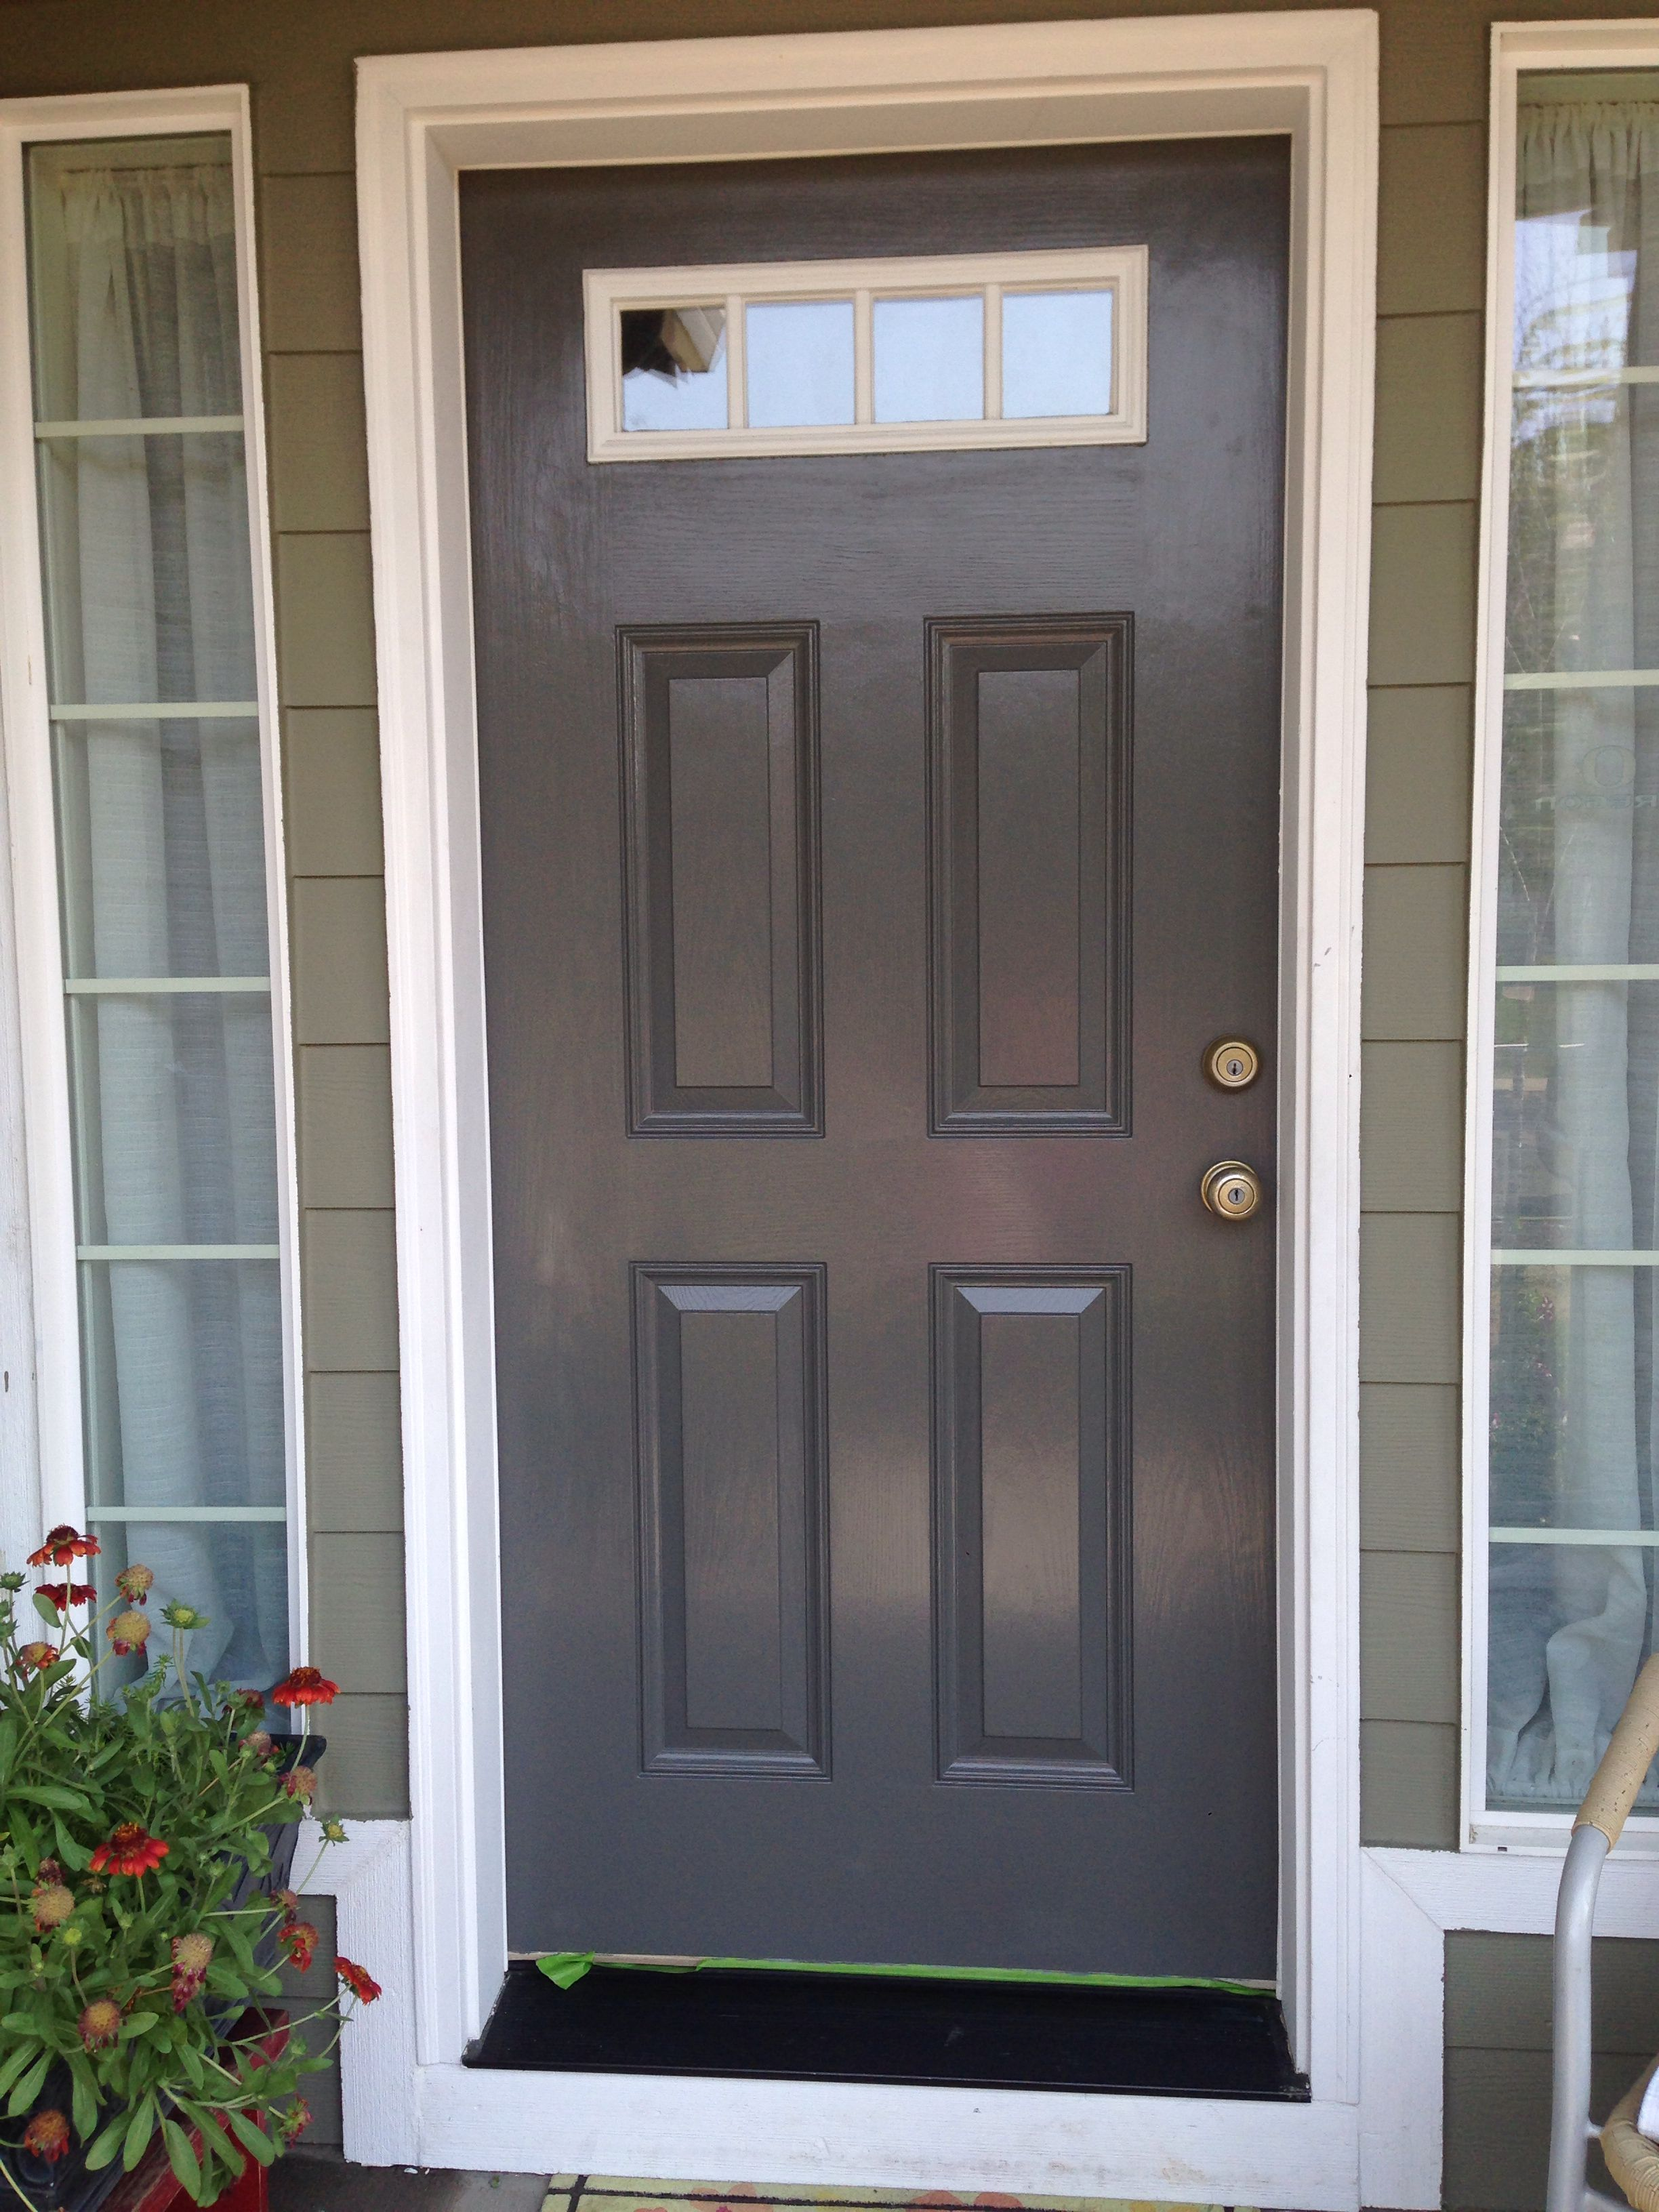 Painted Our Front Door With Behr Mined Coal Door And Trim Paint Front Door Paint Colors Painted Front Doors